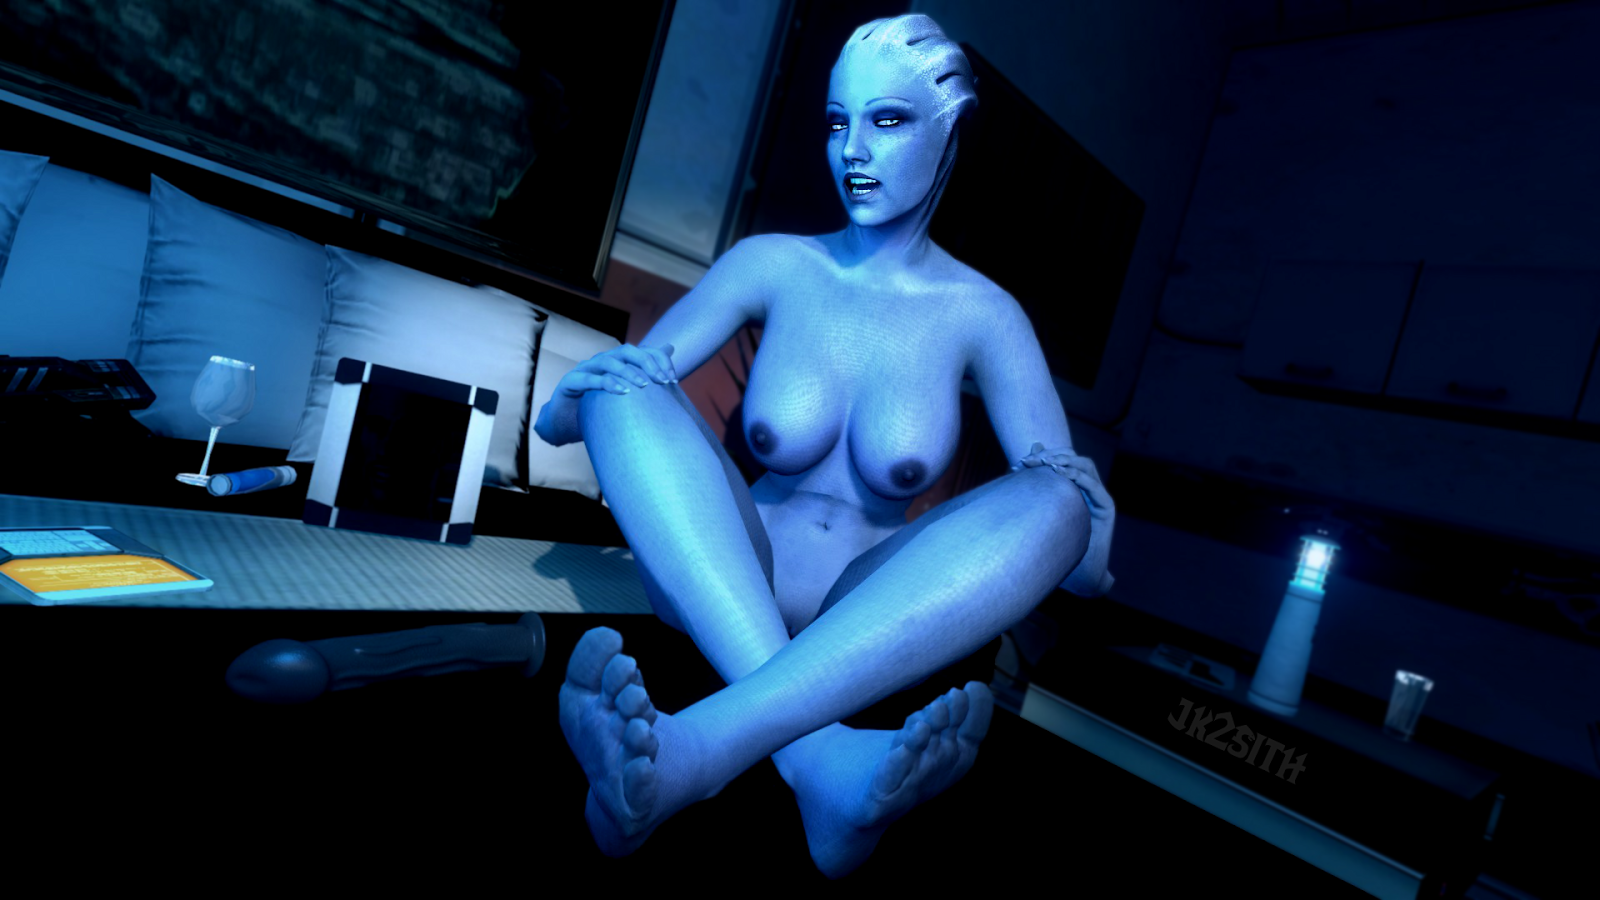 Mass effect porn image gallery pornos thumbs